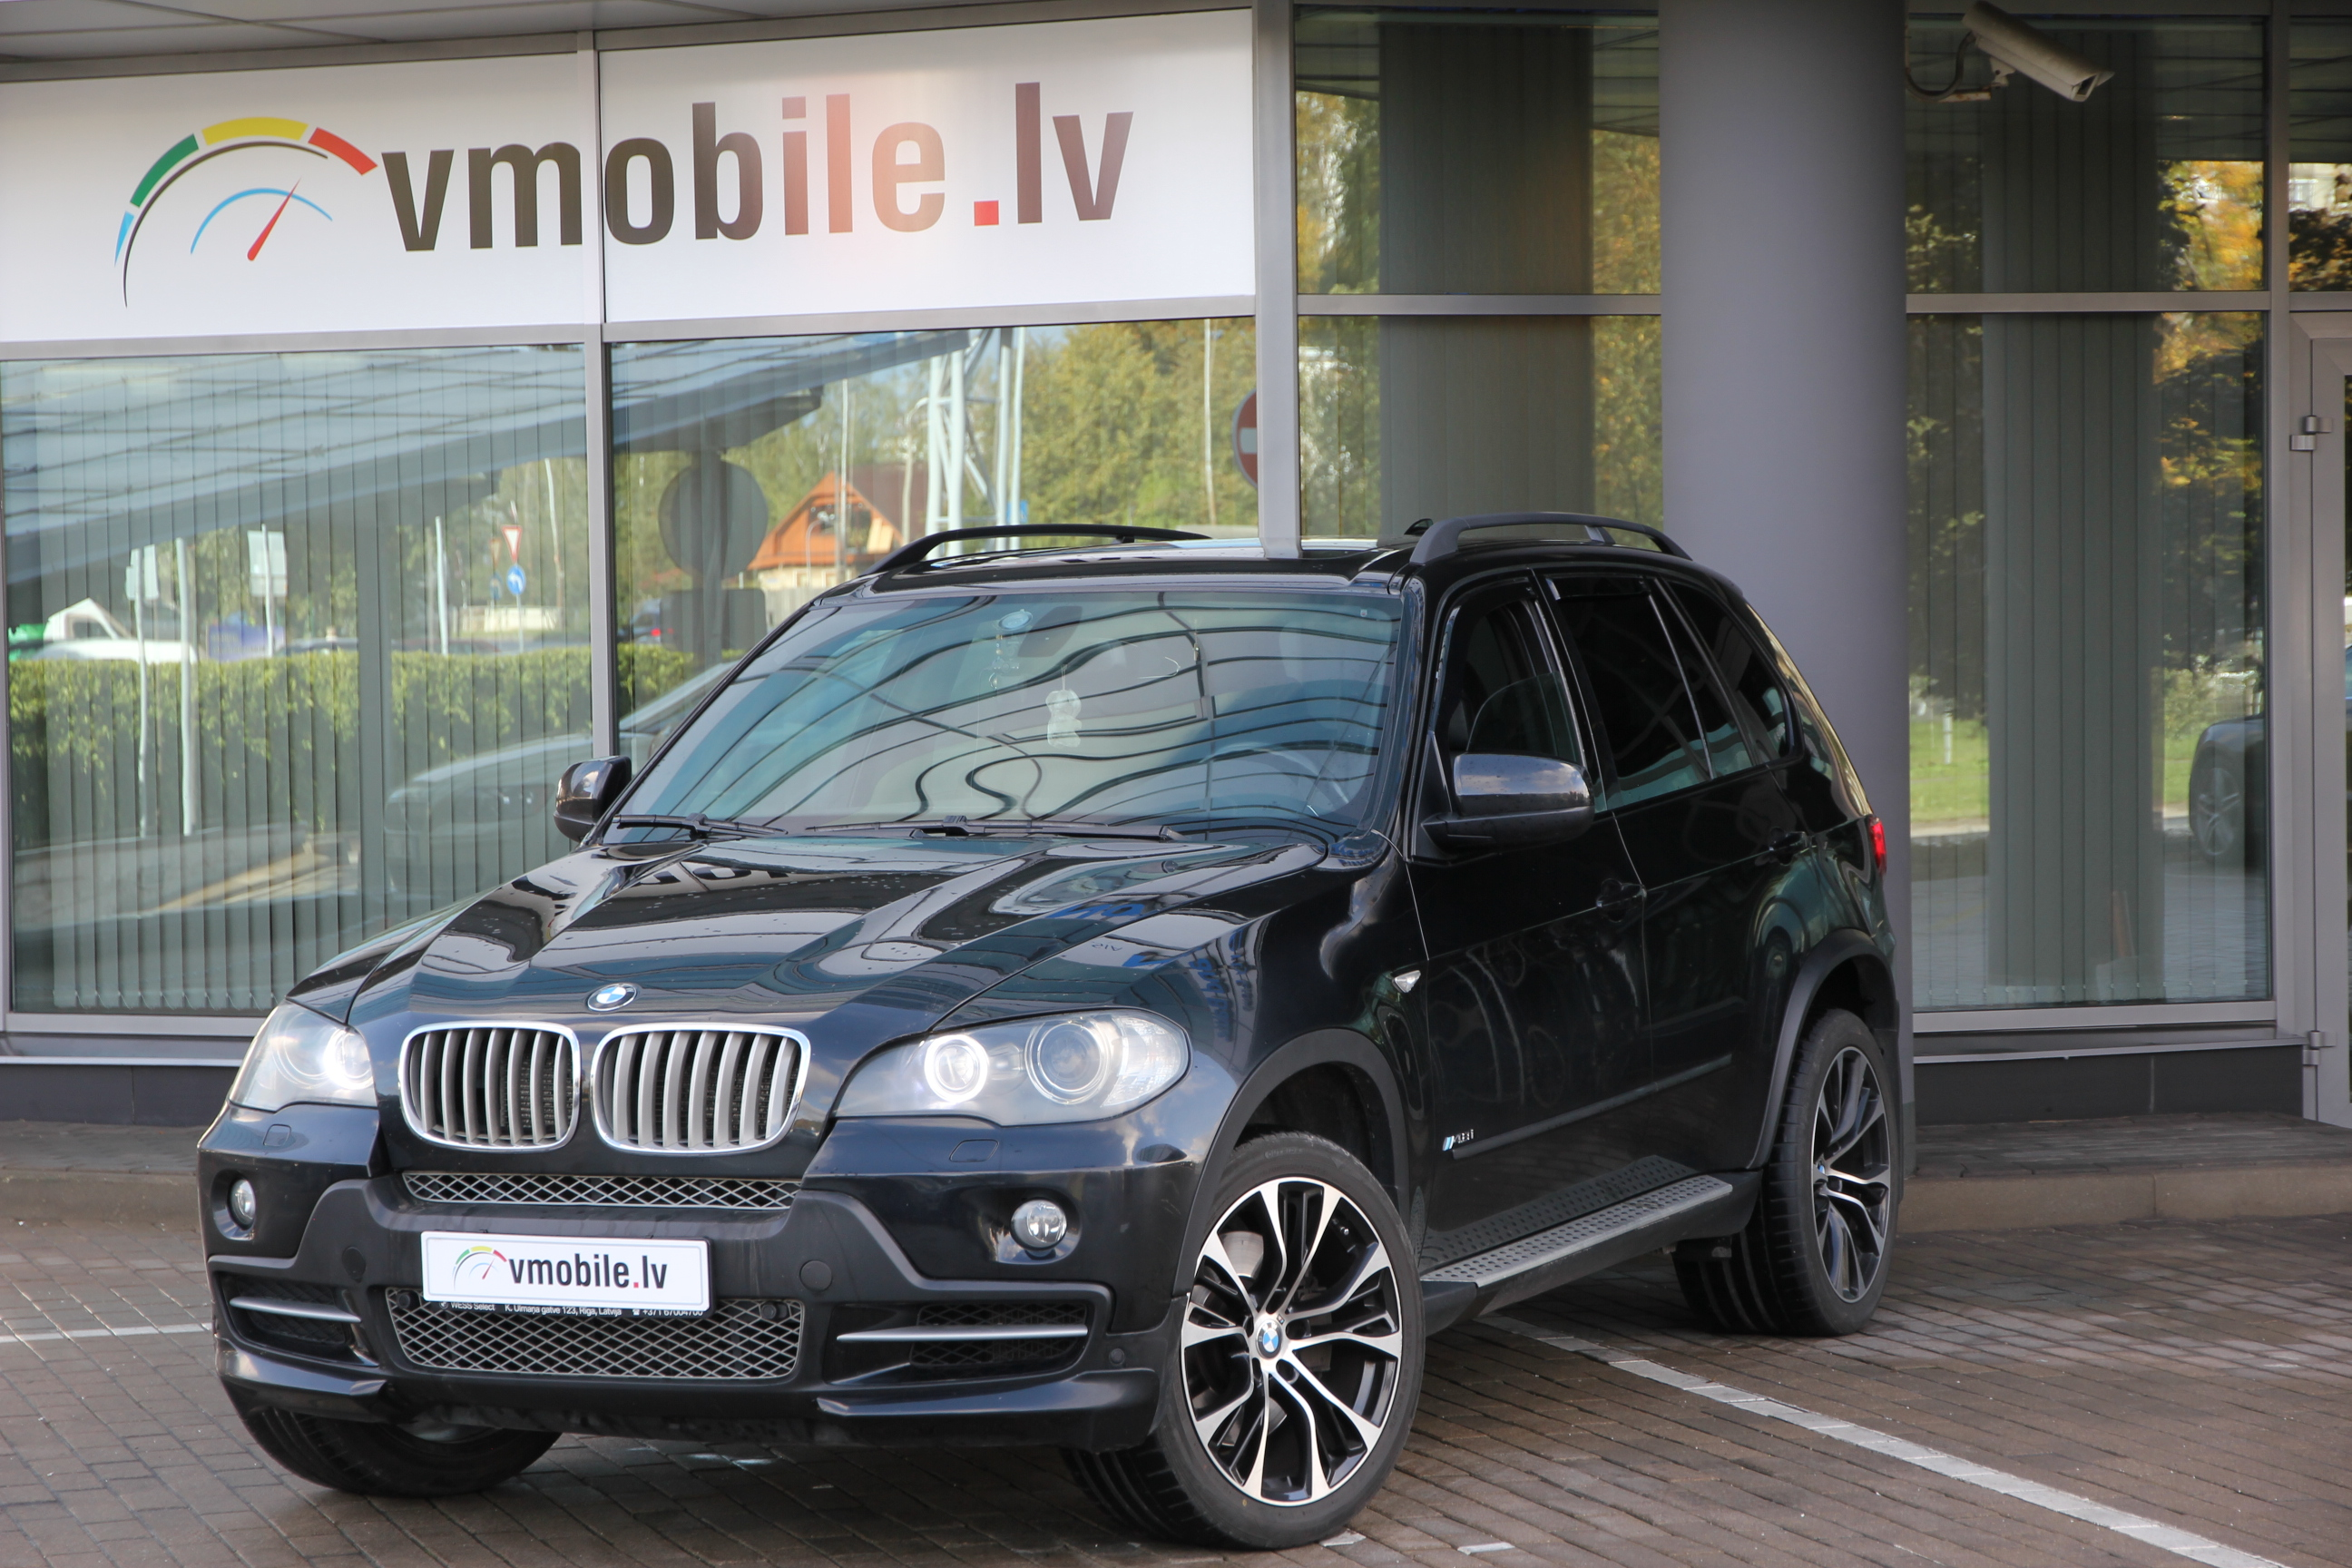 BMW X5 4.8 PETROL GAS 355HP